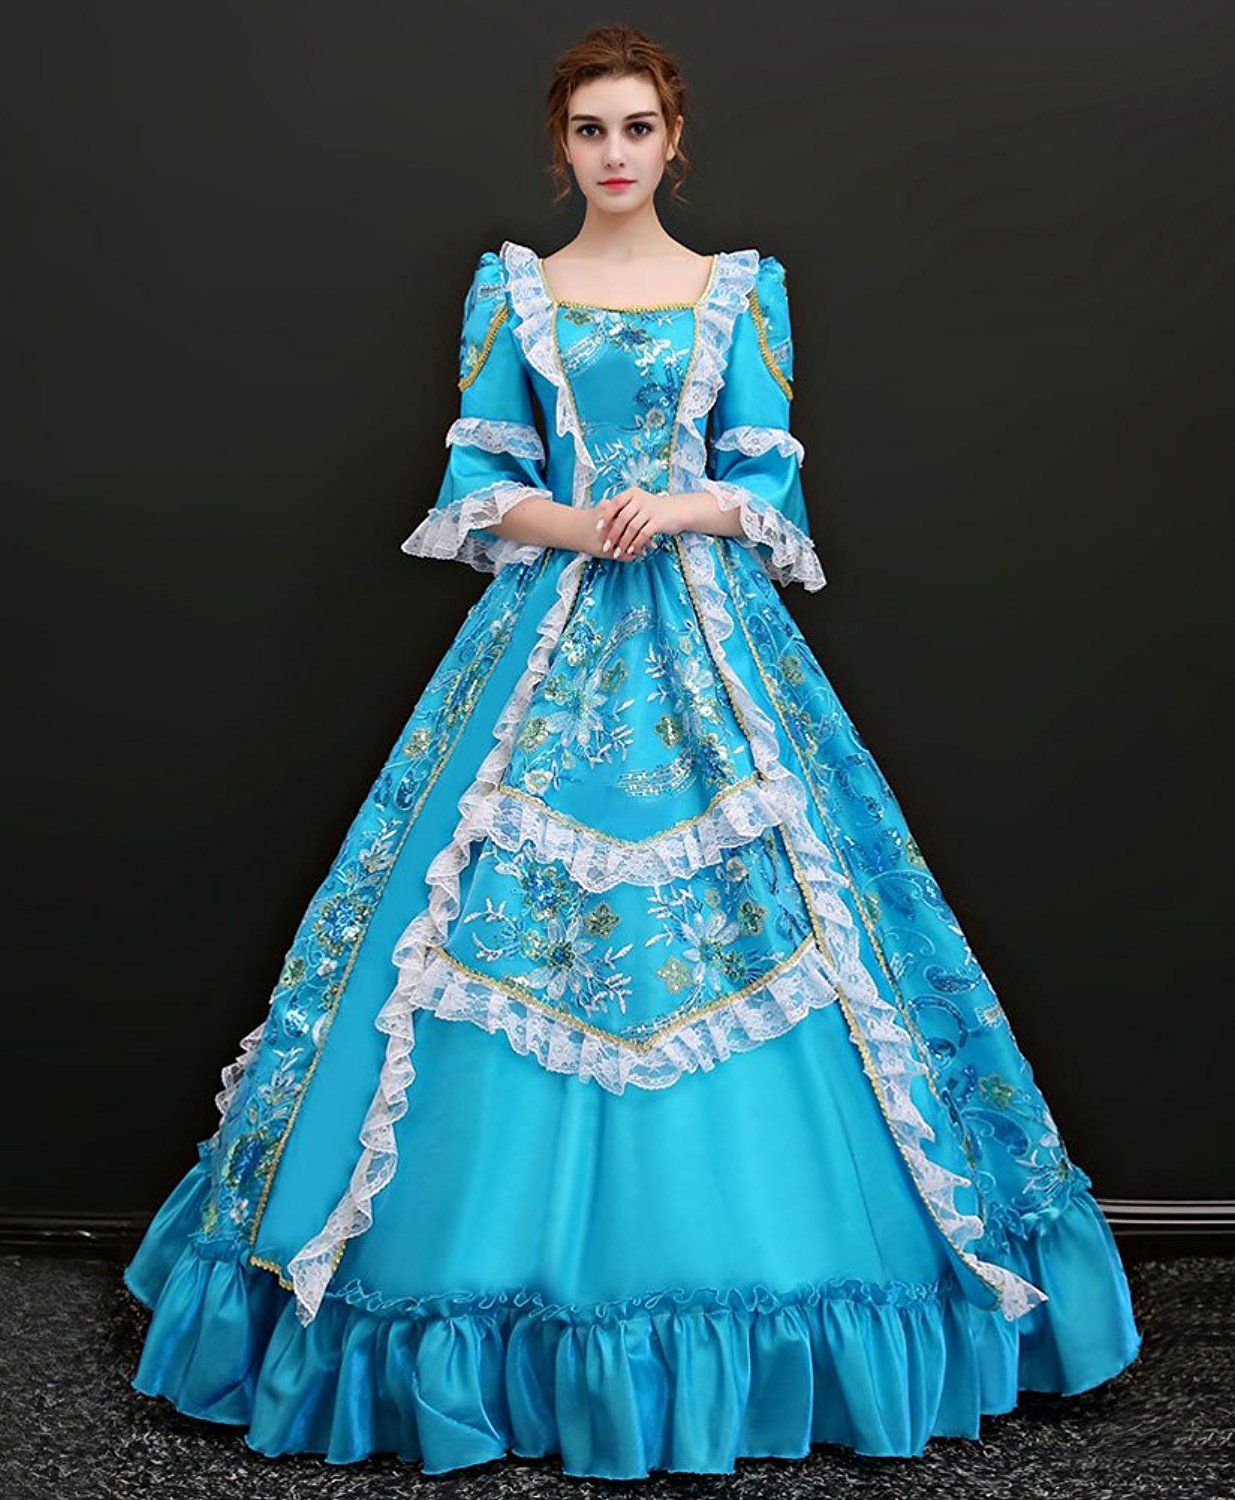 38dc11f7a2830 Amazon.com: Zukzi Women's Floor Length Victorian Dress Costume Masquerade  Ball Gowns: Clothing